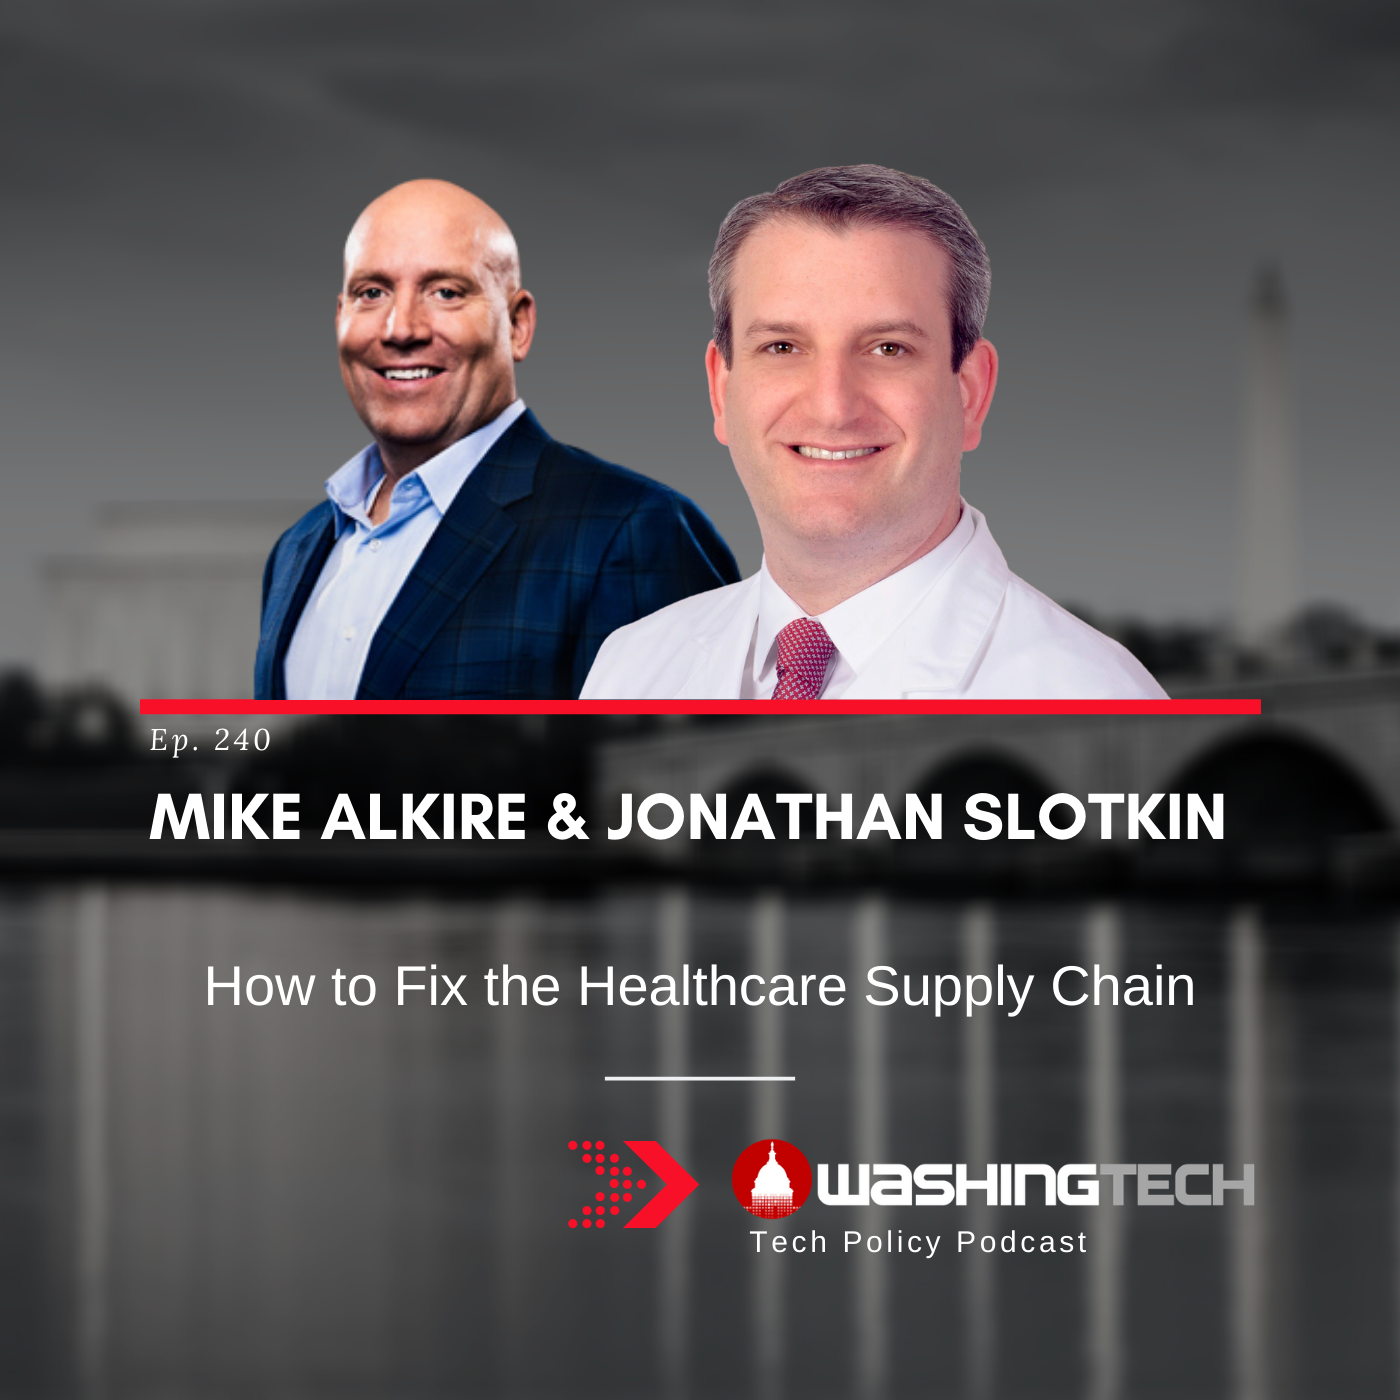 Mike Alkire and Jonathan Slotkin